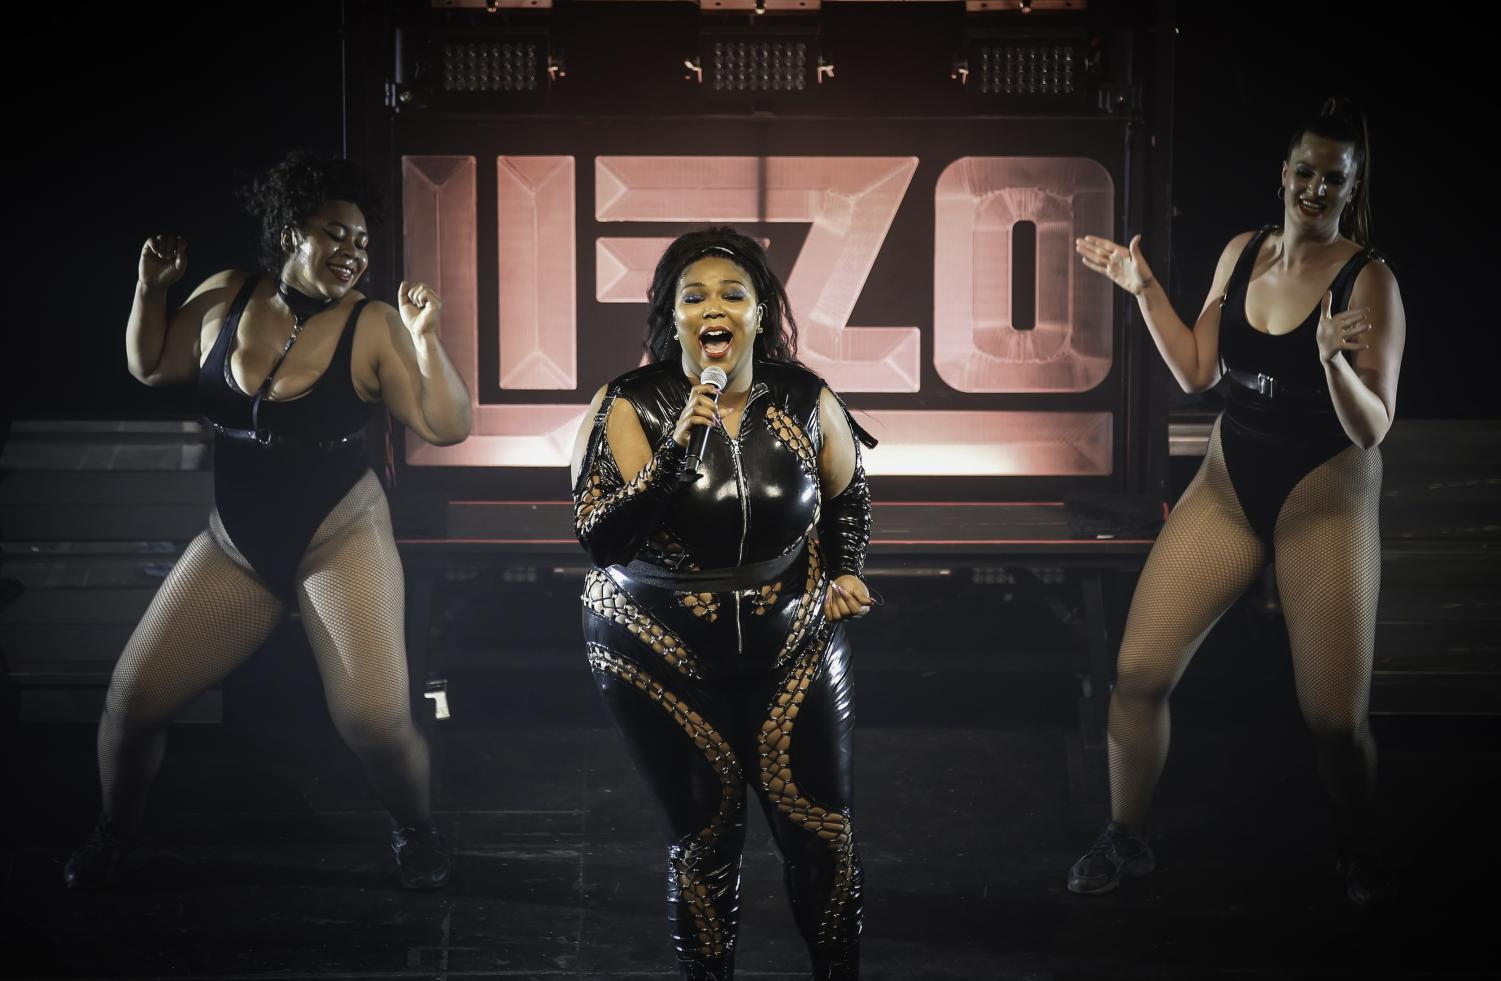 Lizzo performs at the Palace Theater in St. Paul, Minnesota in 2018.